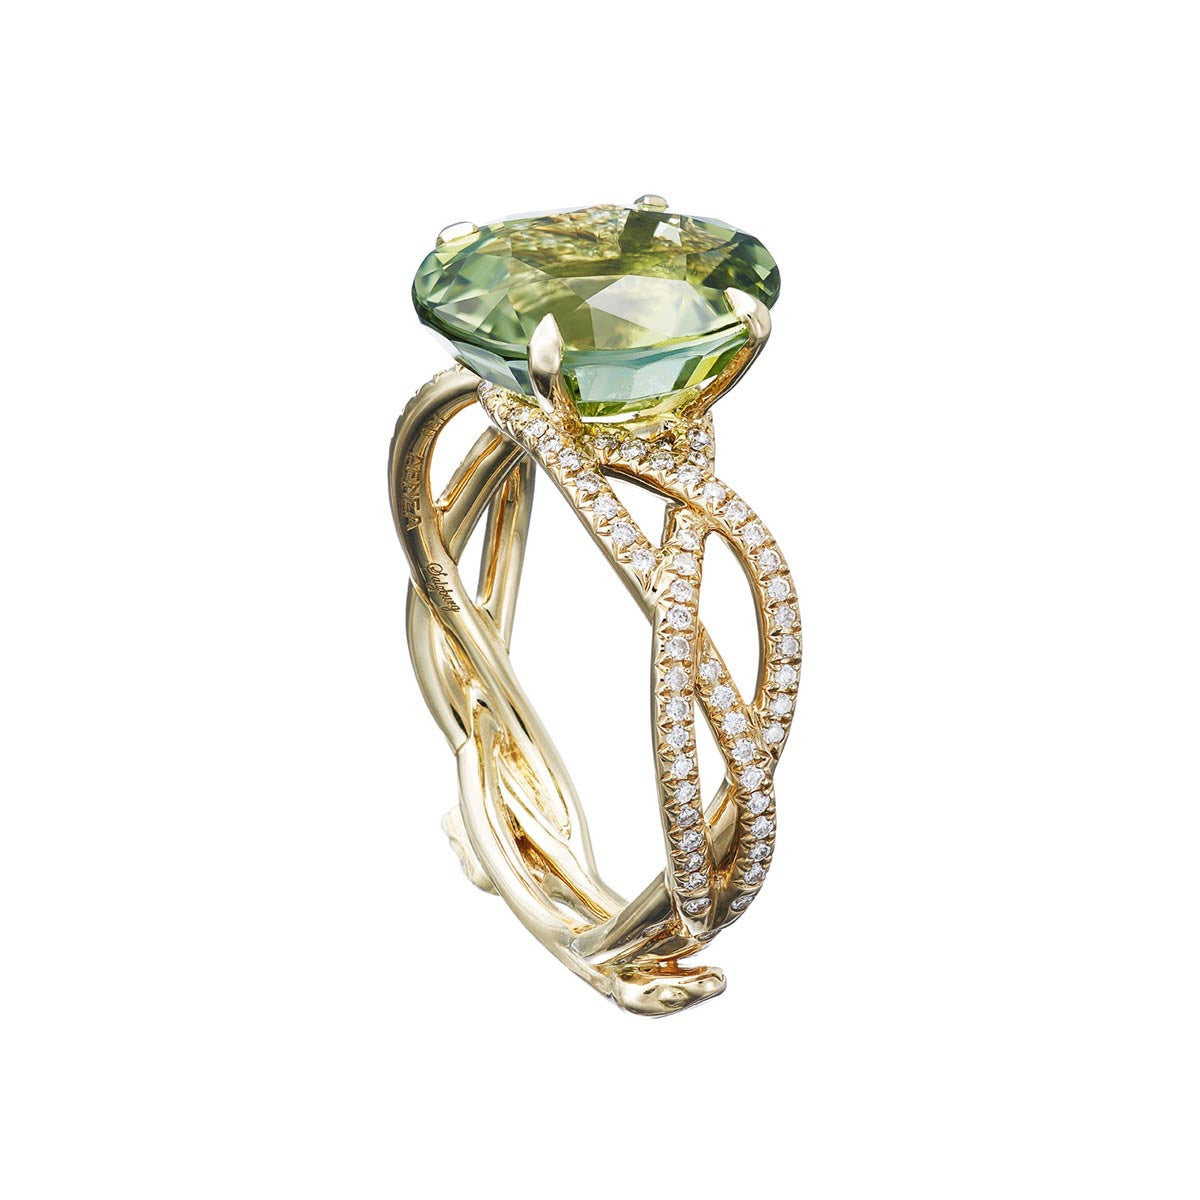 "Ring ""3 Snakes"" Yellow Gold with White Diamonds and a Green Tourmaline 4,25ct."